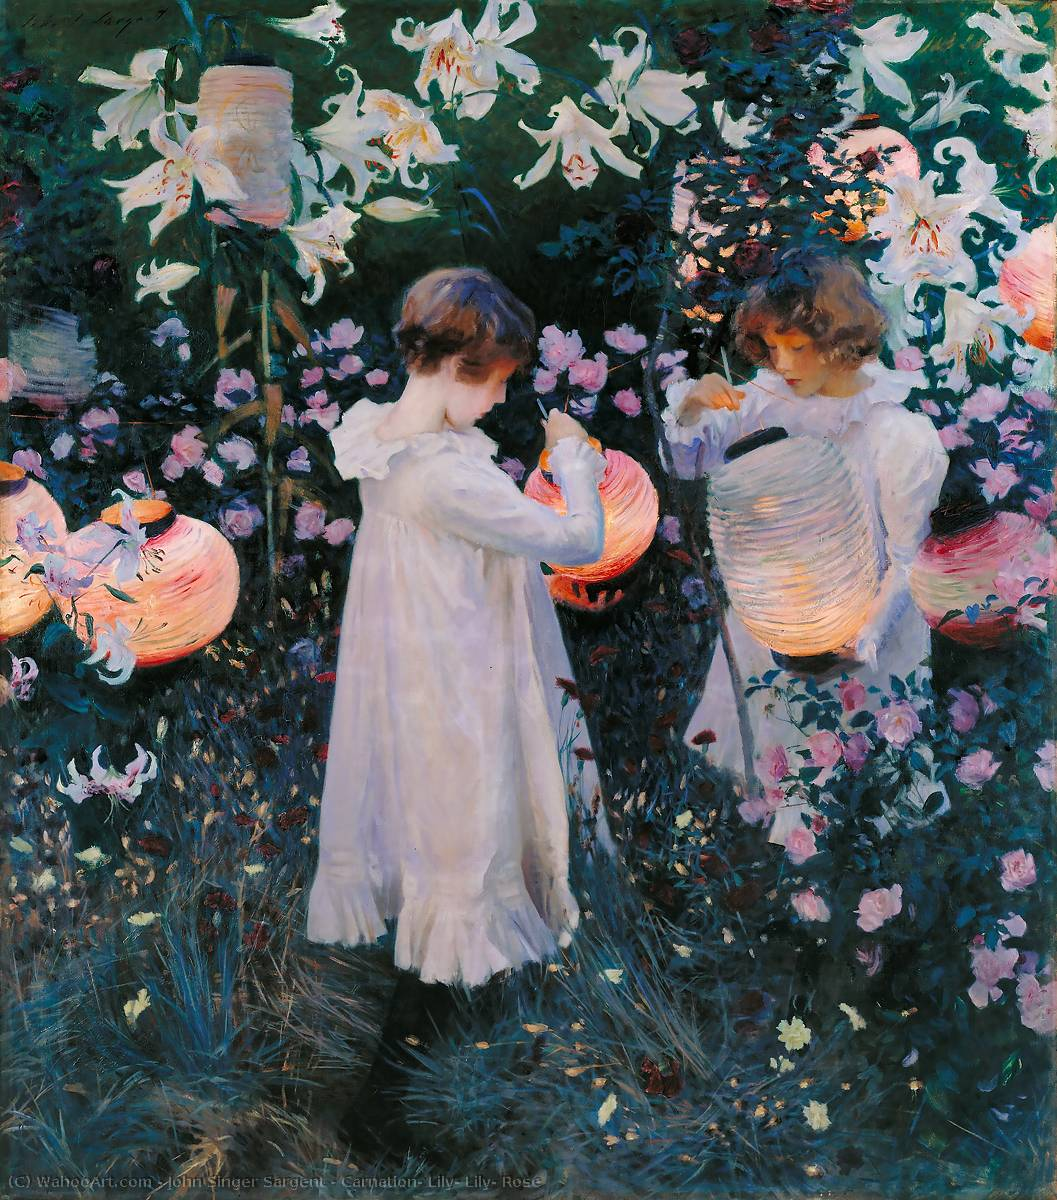 Buy Museum Art Reproductions | Carnation, Lily, Lily, Rose by John Singer Sargent | Most-Famous-Paintings.com